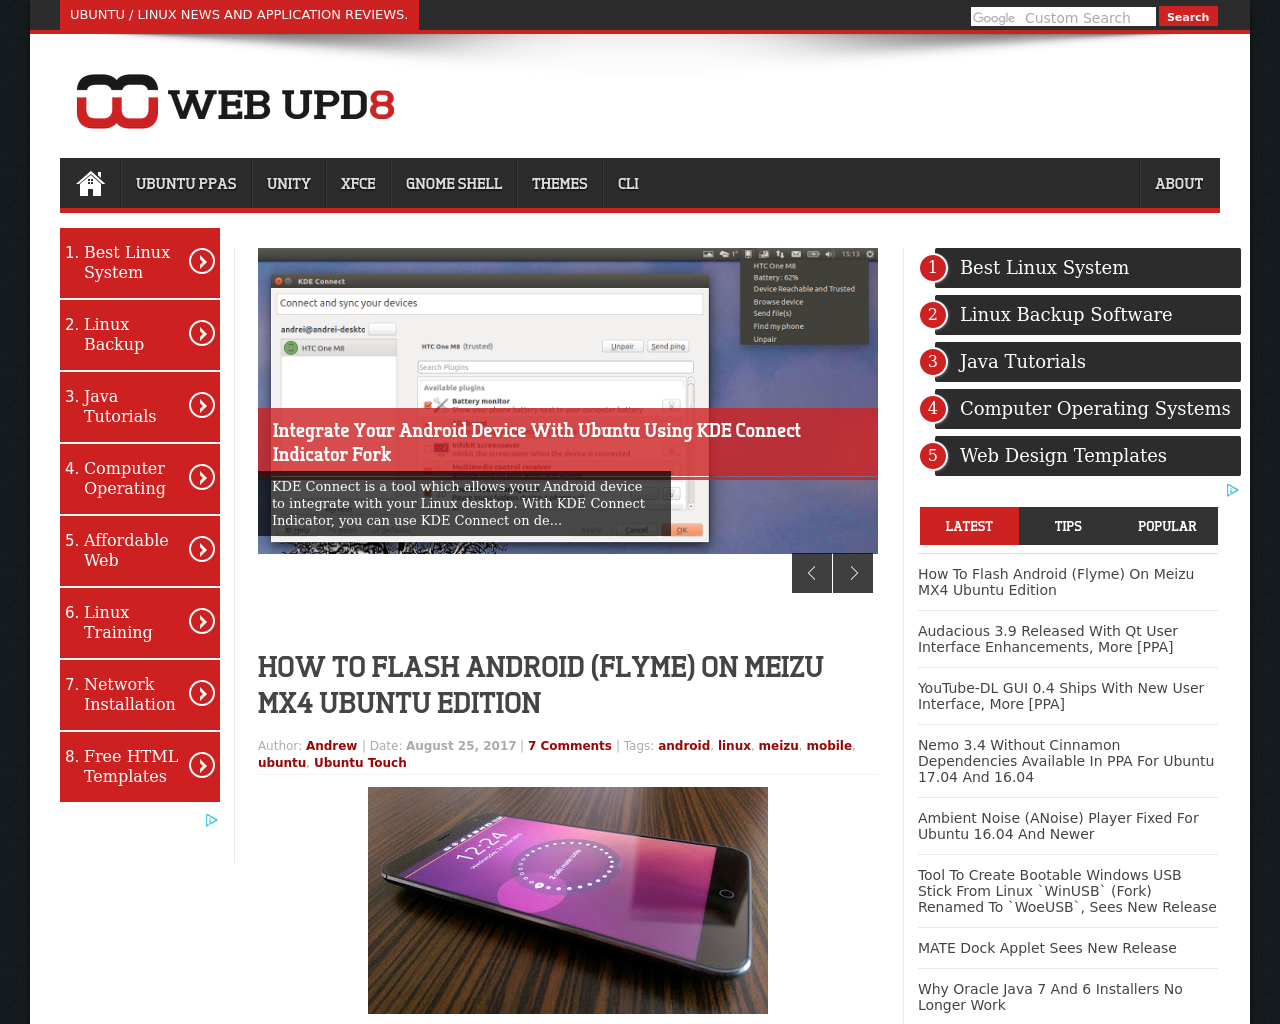 Web-Upd8-Advertising-Reviews-Pricing